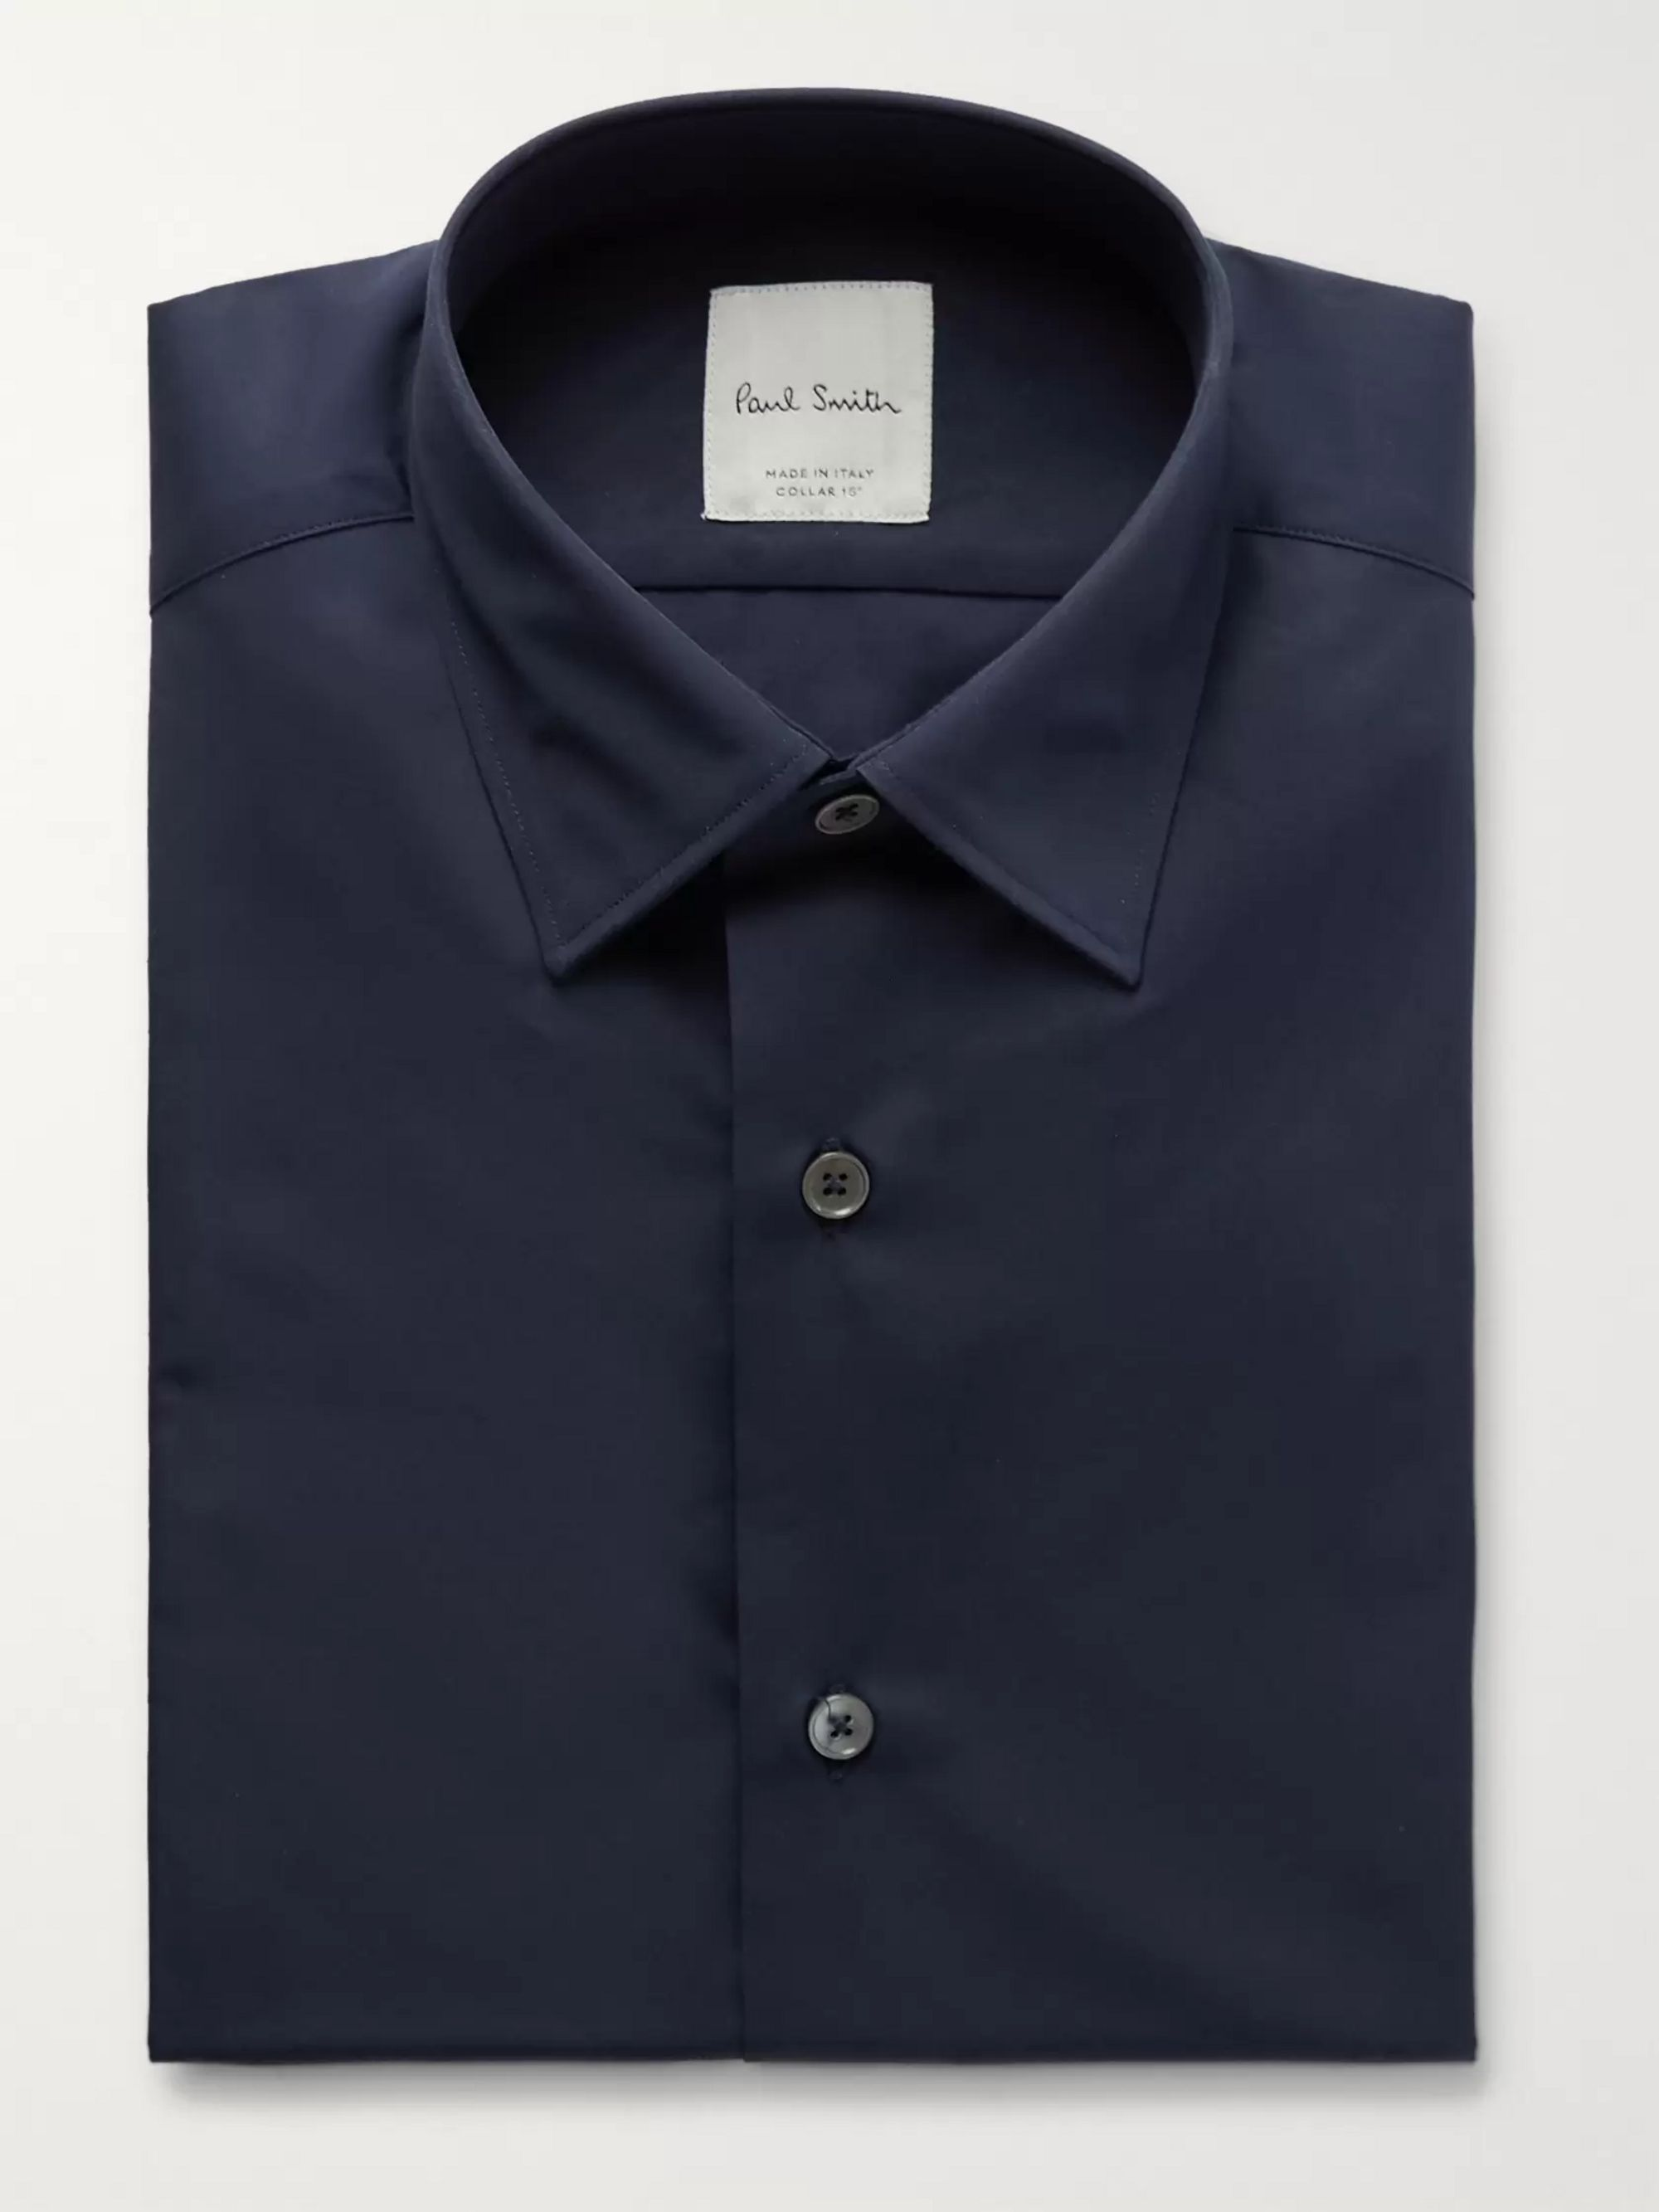 Paul Smith Navy Cotton-Poplin Shirt